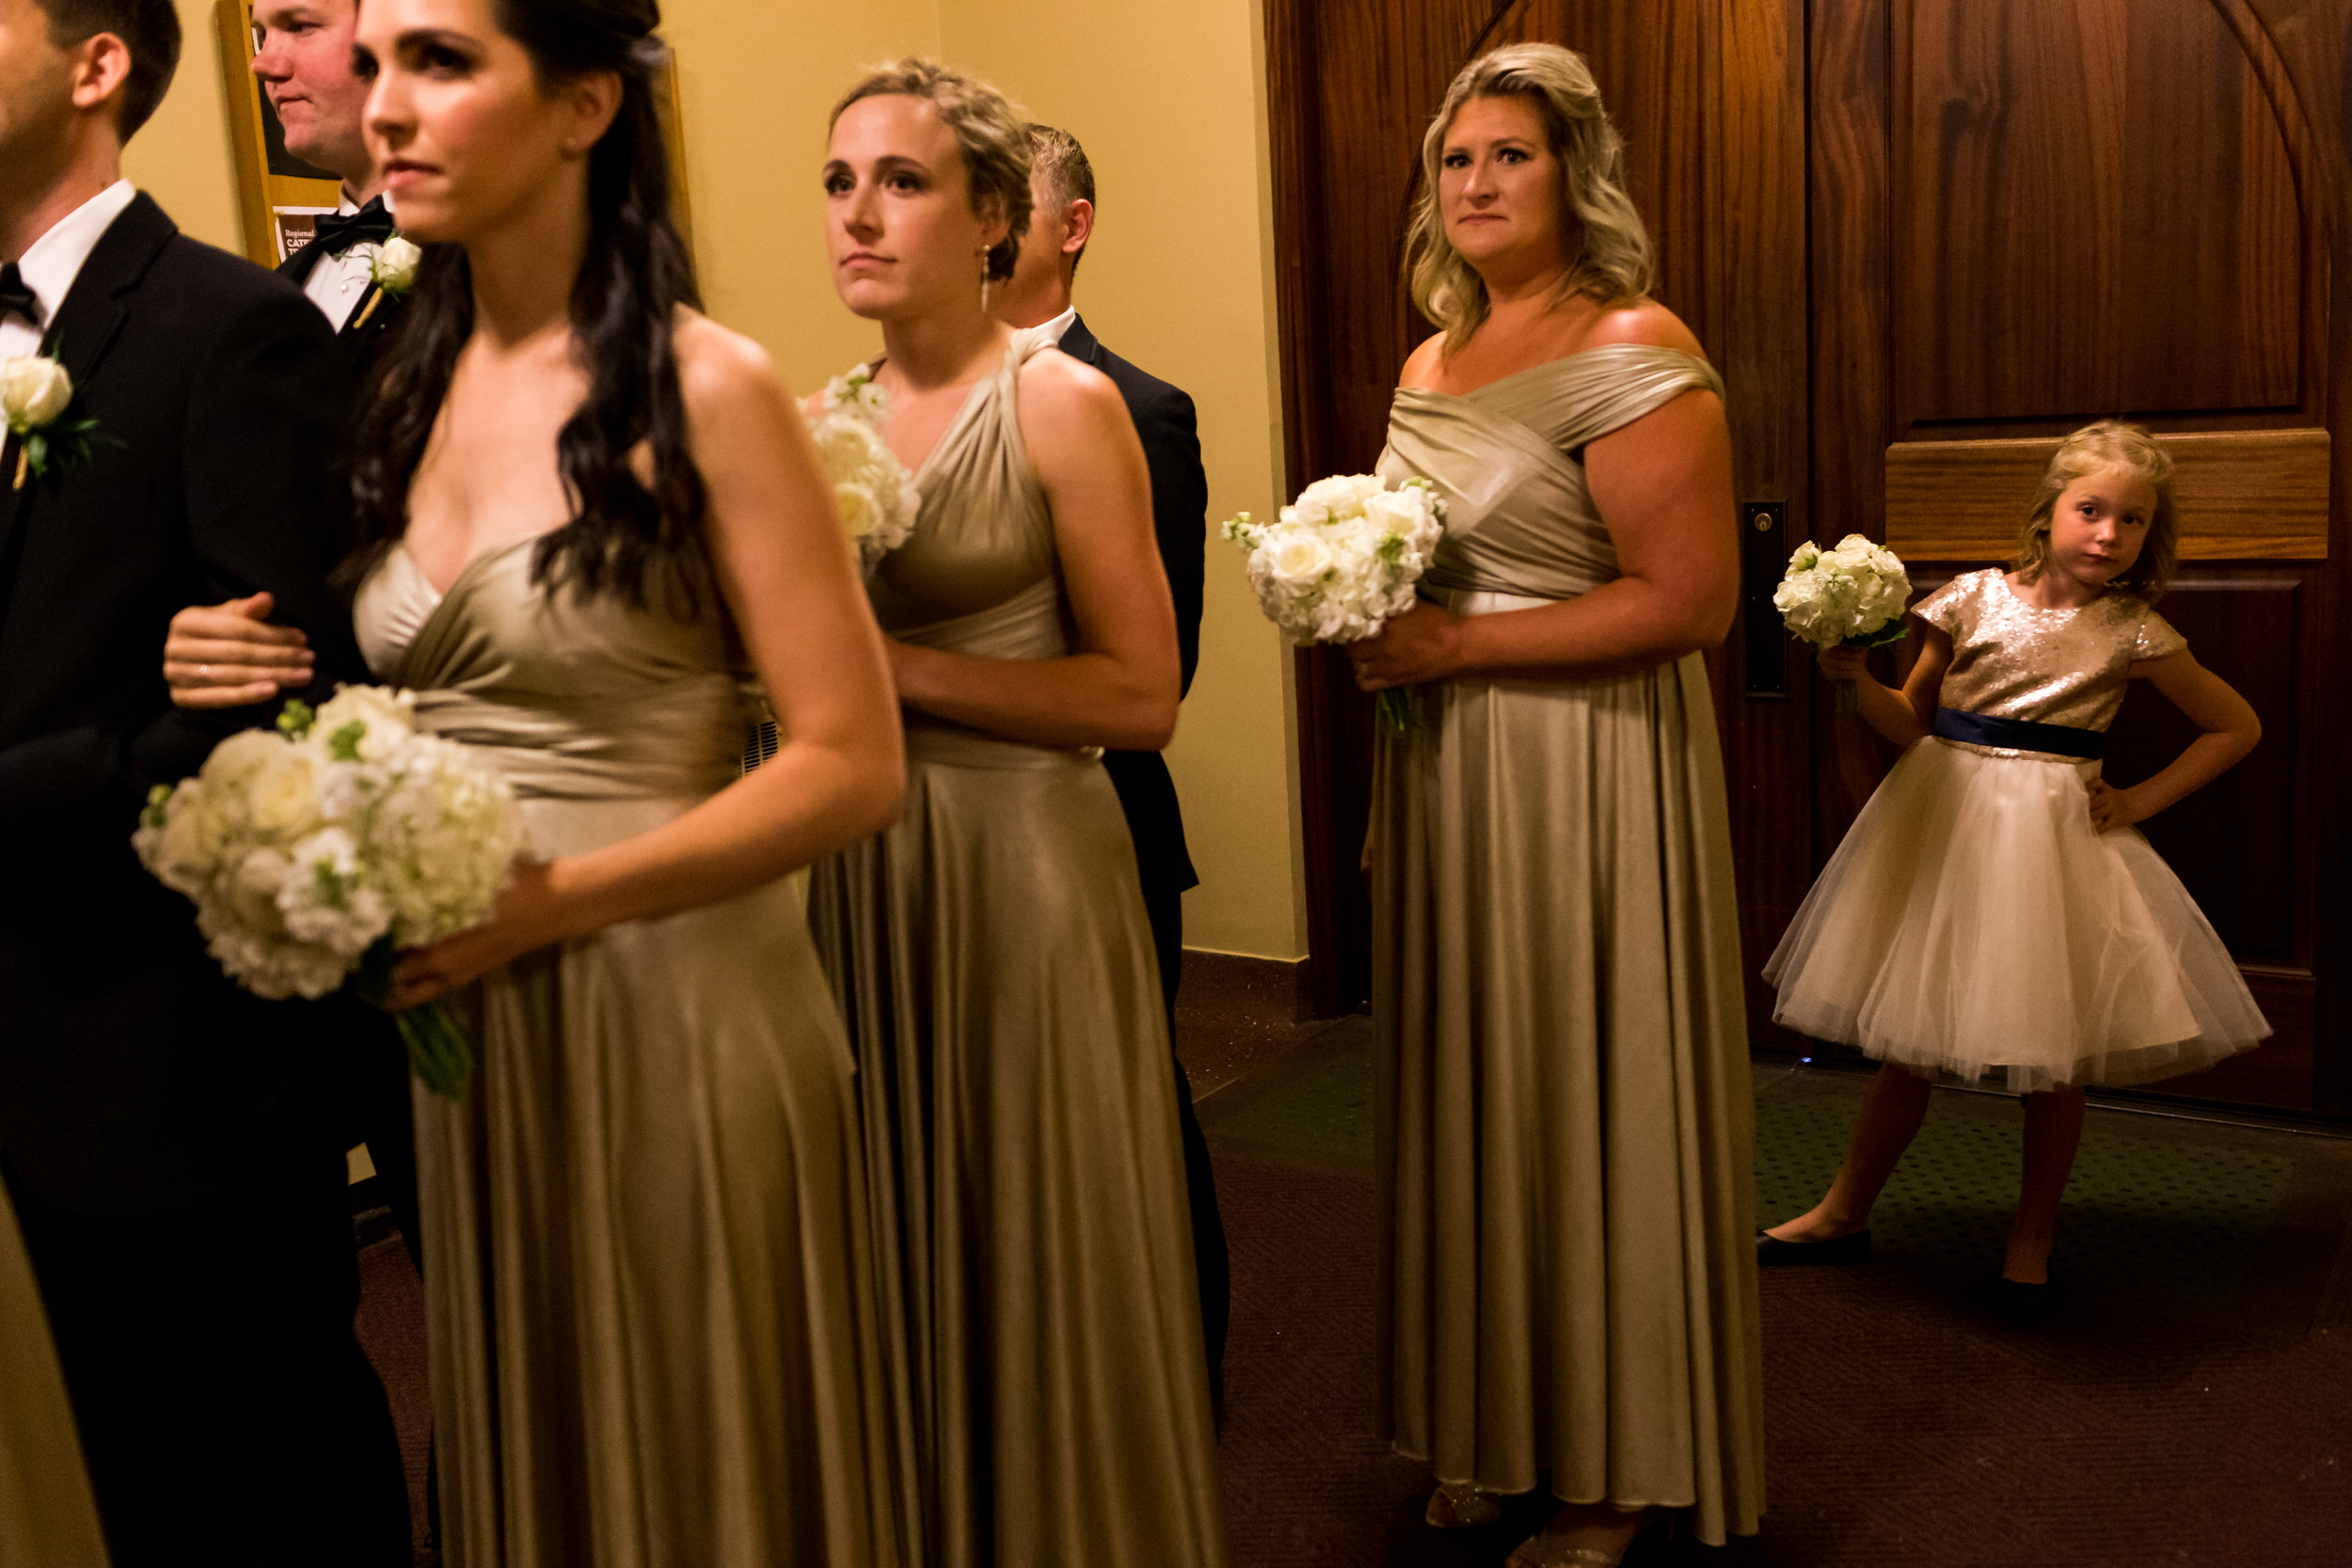 salem_convention_center_wedding_stark_photography_010